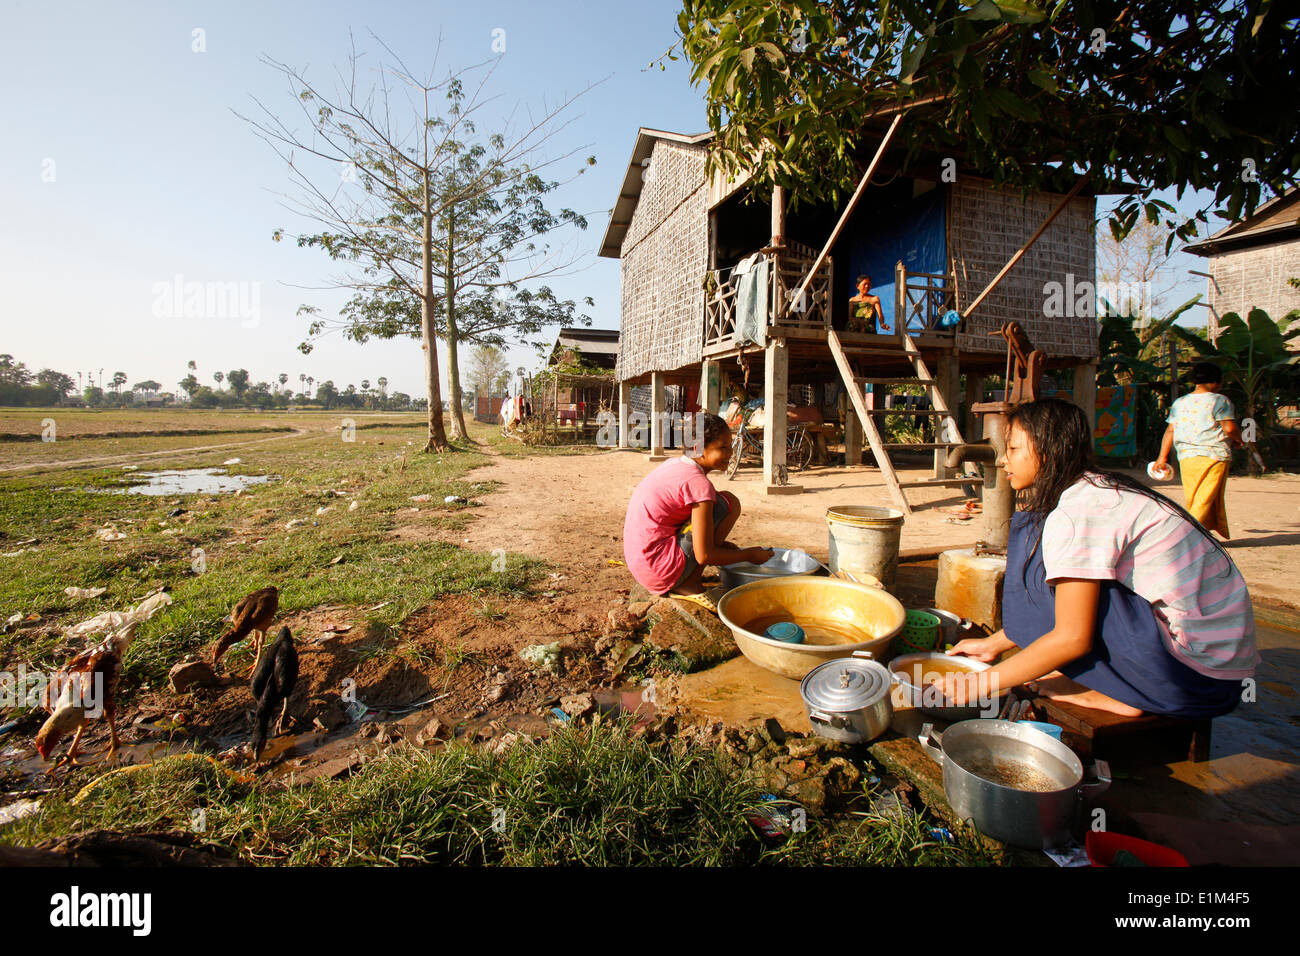 Daily life in a cambodian village. Water supply. - Stock Image